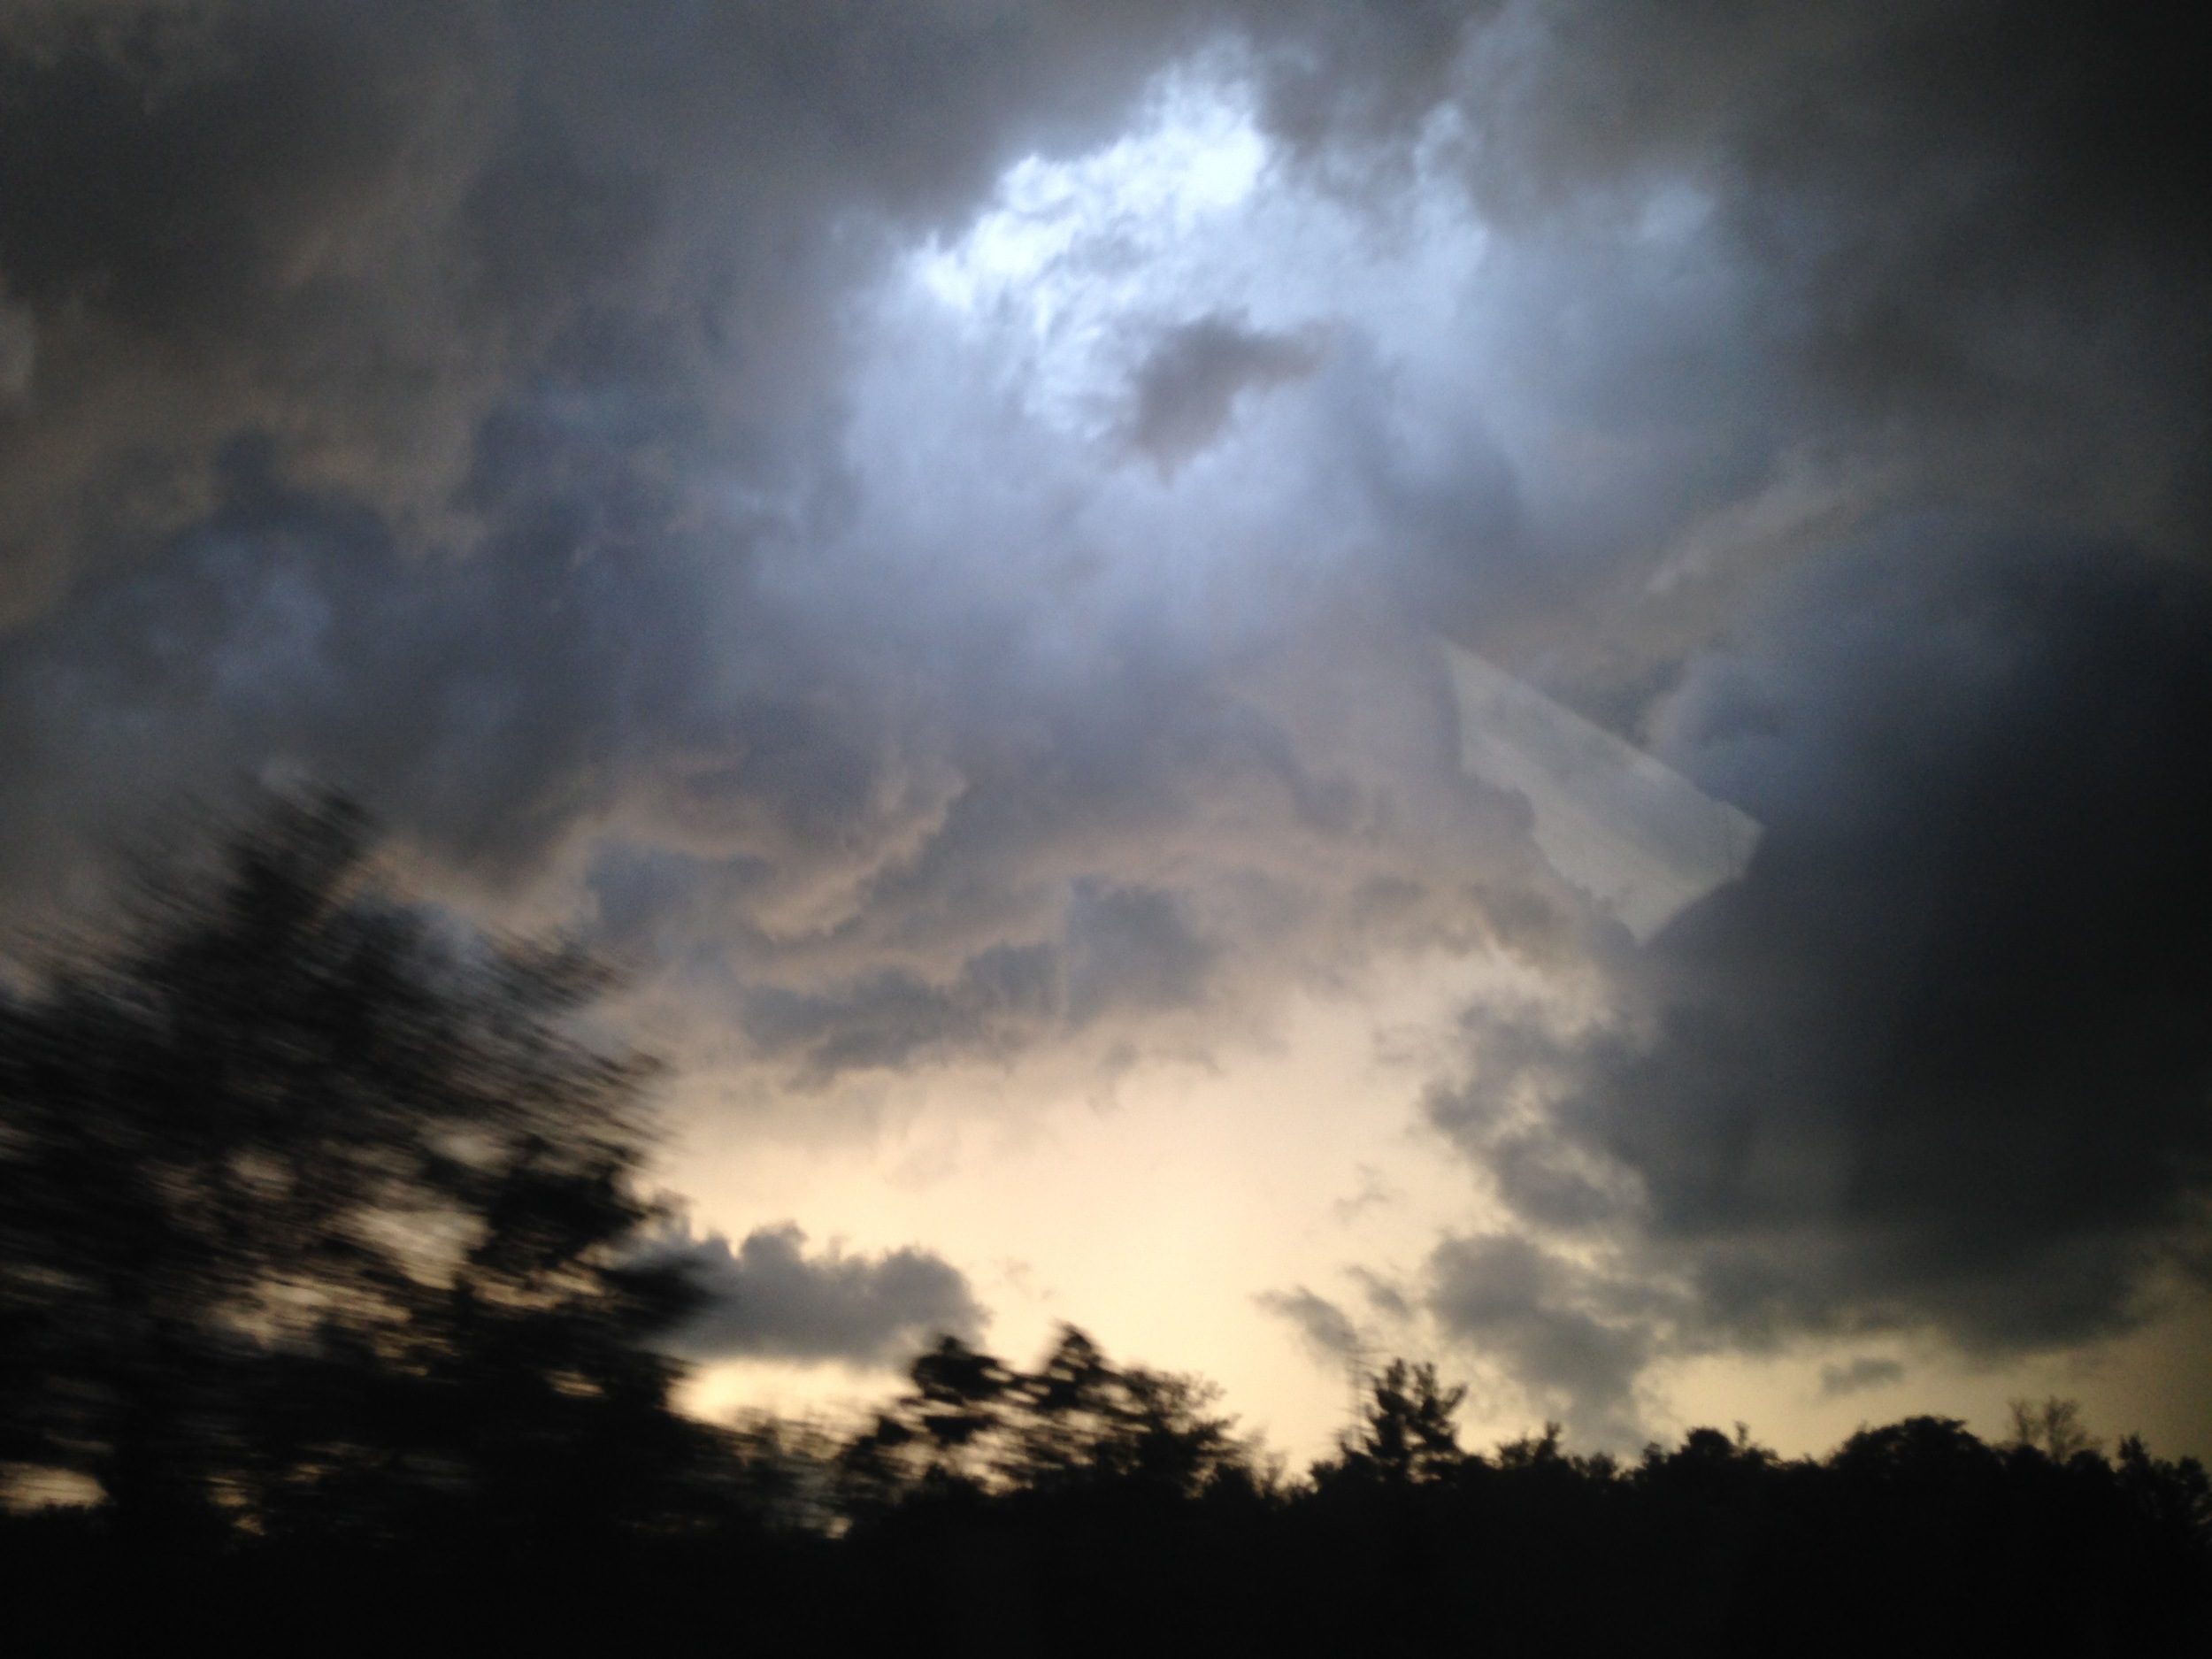 A quick glimpse of the storm clouds we ran into on the way home. We got stuck in the eye of the storm, but it was quite a beautiful thing in retrospect!